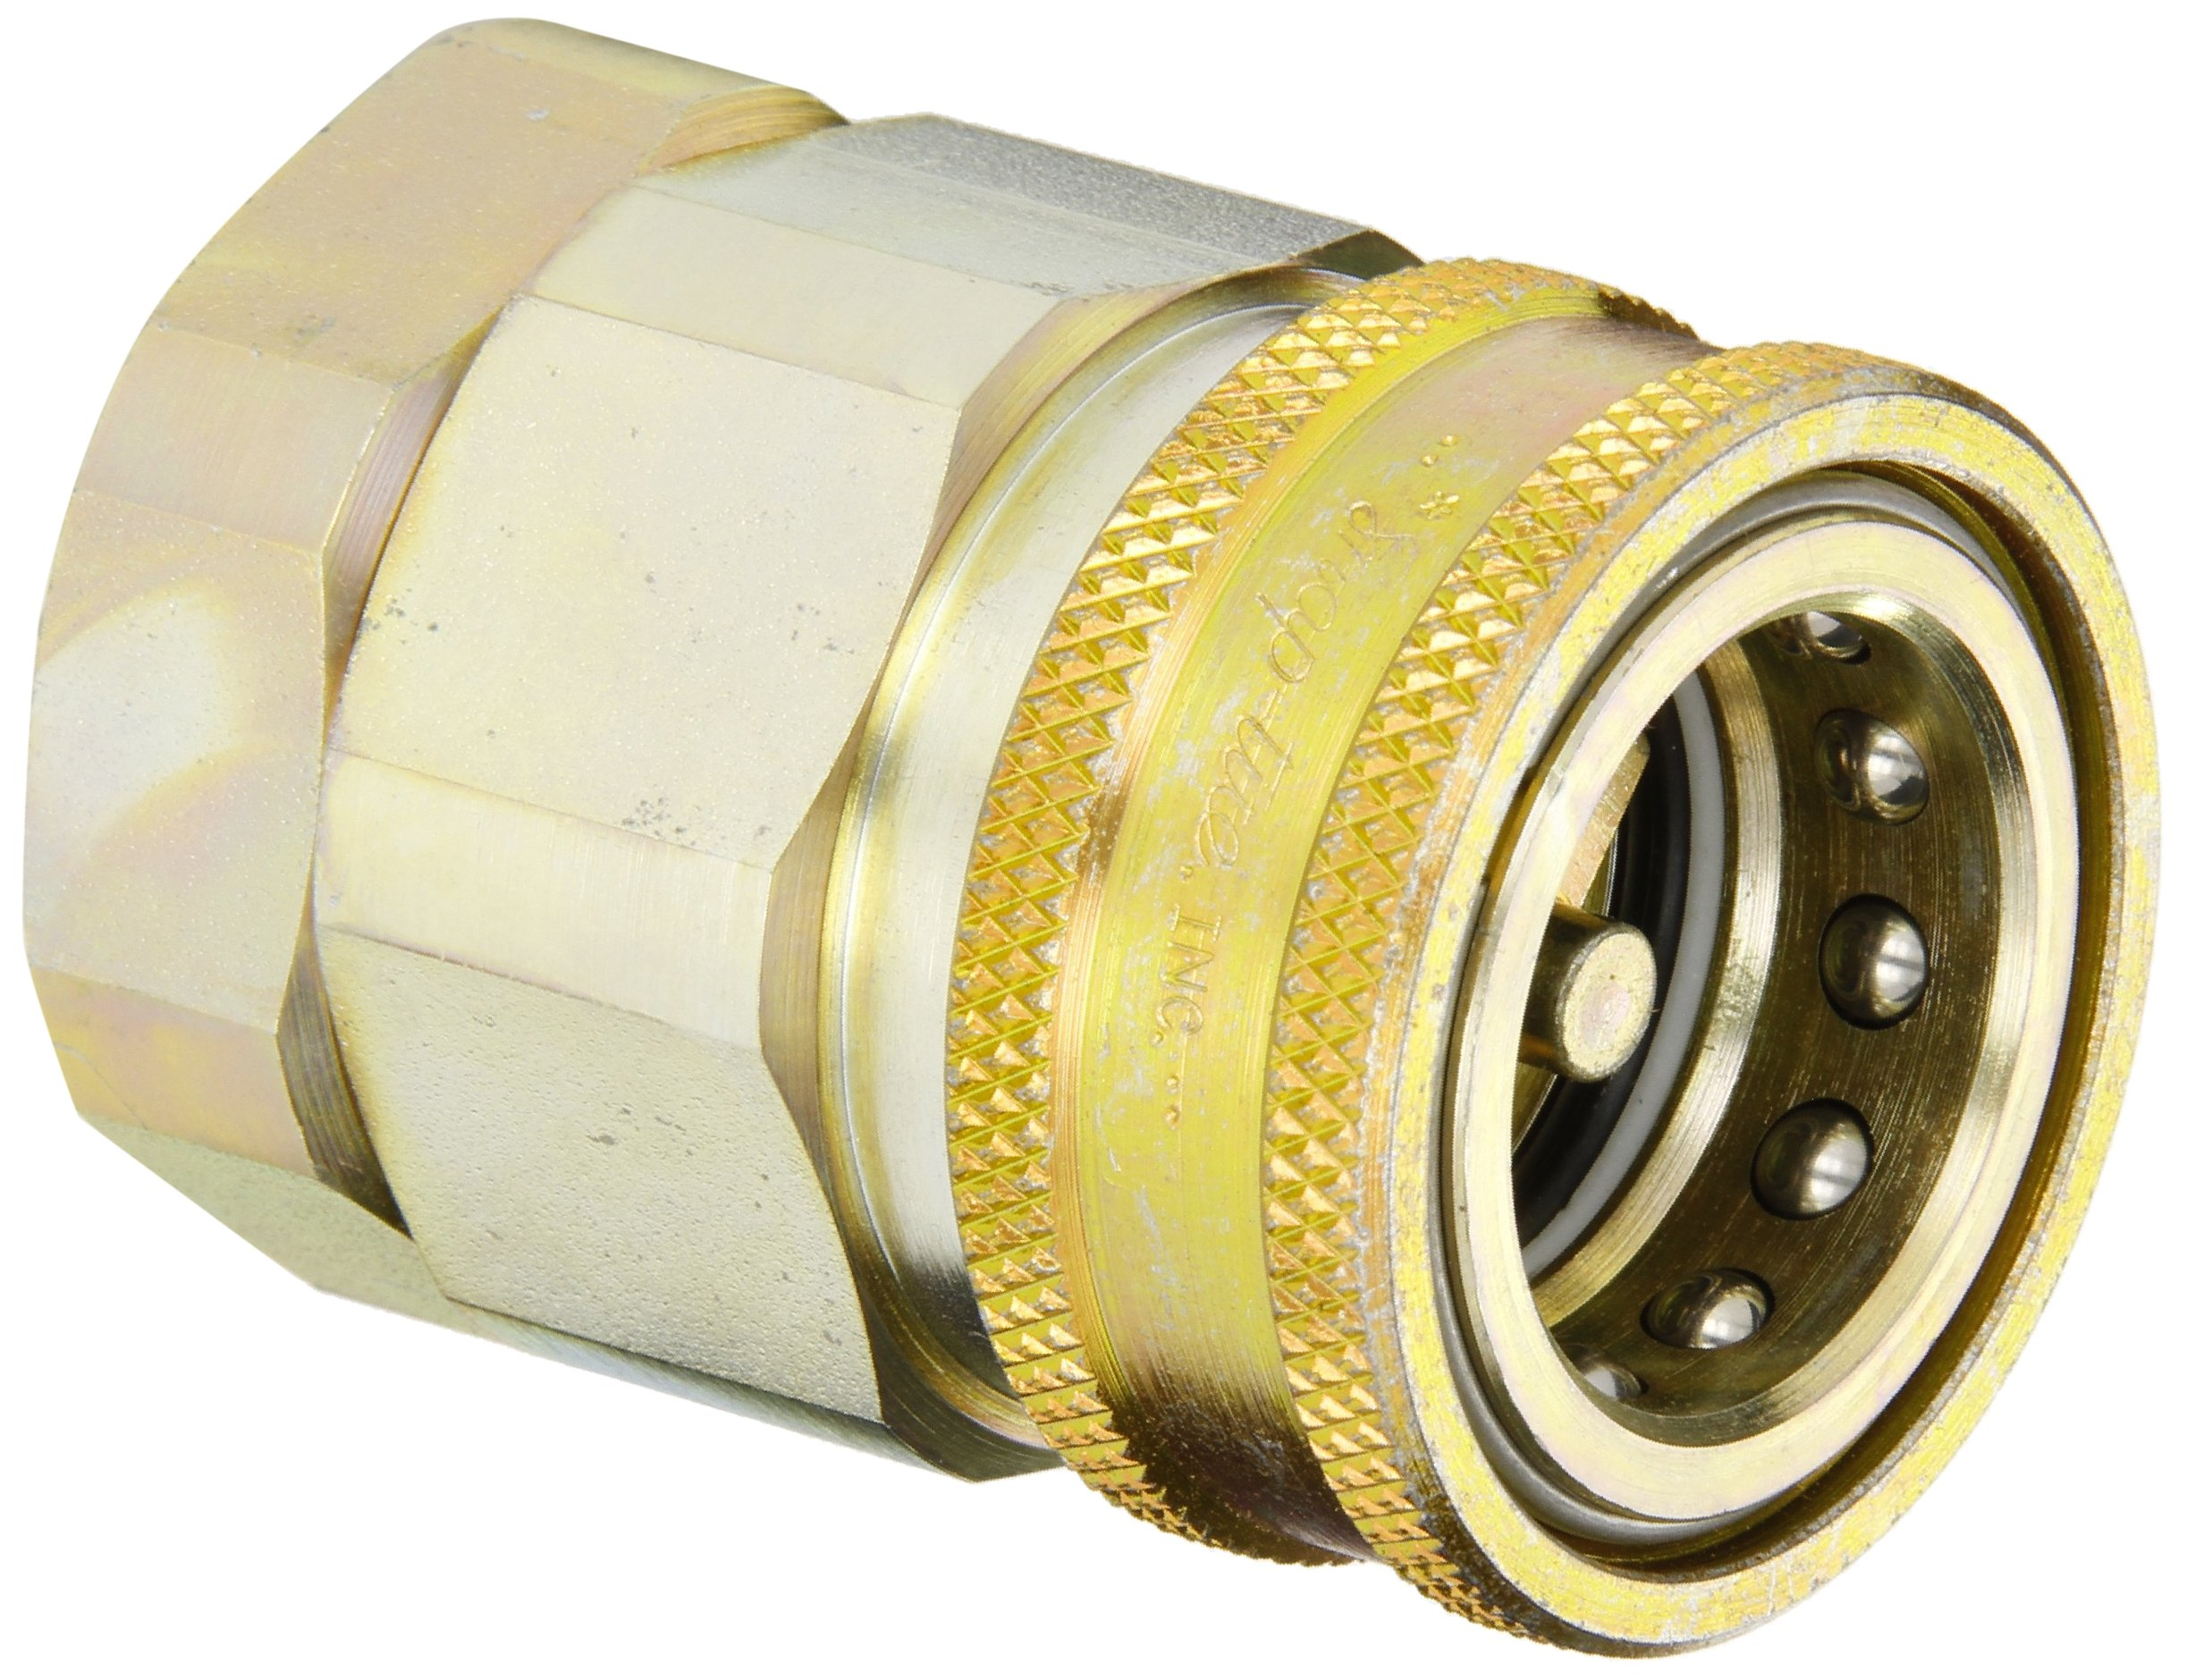 Snap-Tite VHC16-16F Zinc-Plated Steel H-Shape Quick-Disconnect Hose Coupling, Sleeve-Lock Socket, 1'' NPTF Female x 1'' Coupling Size